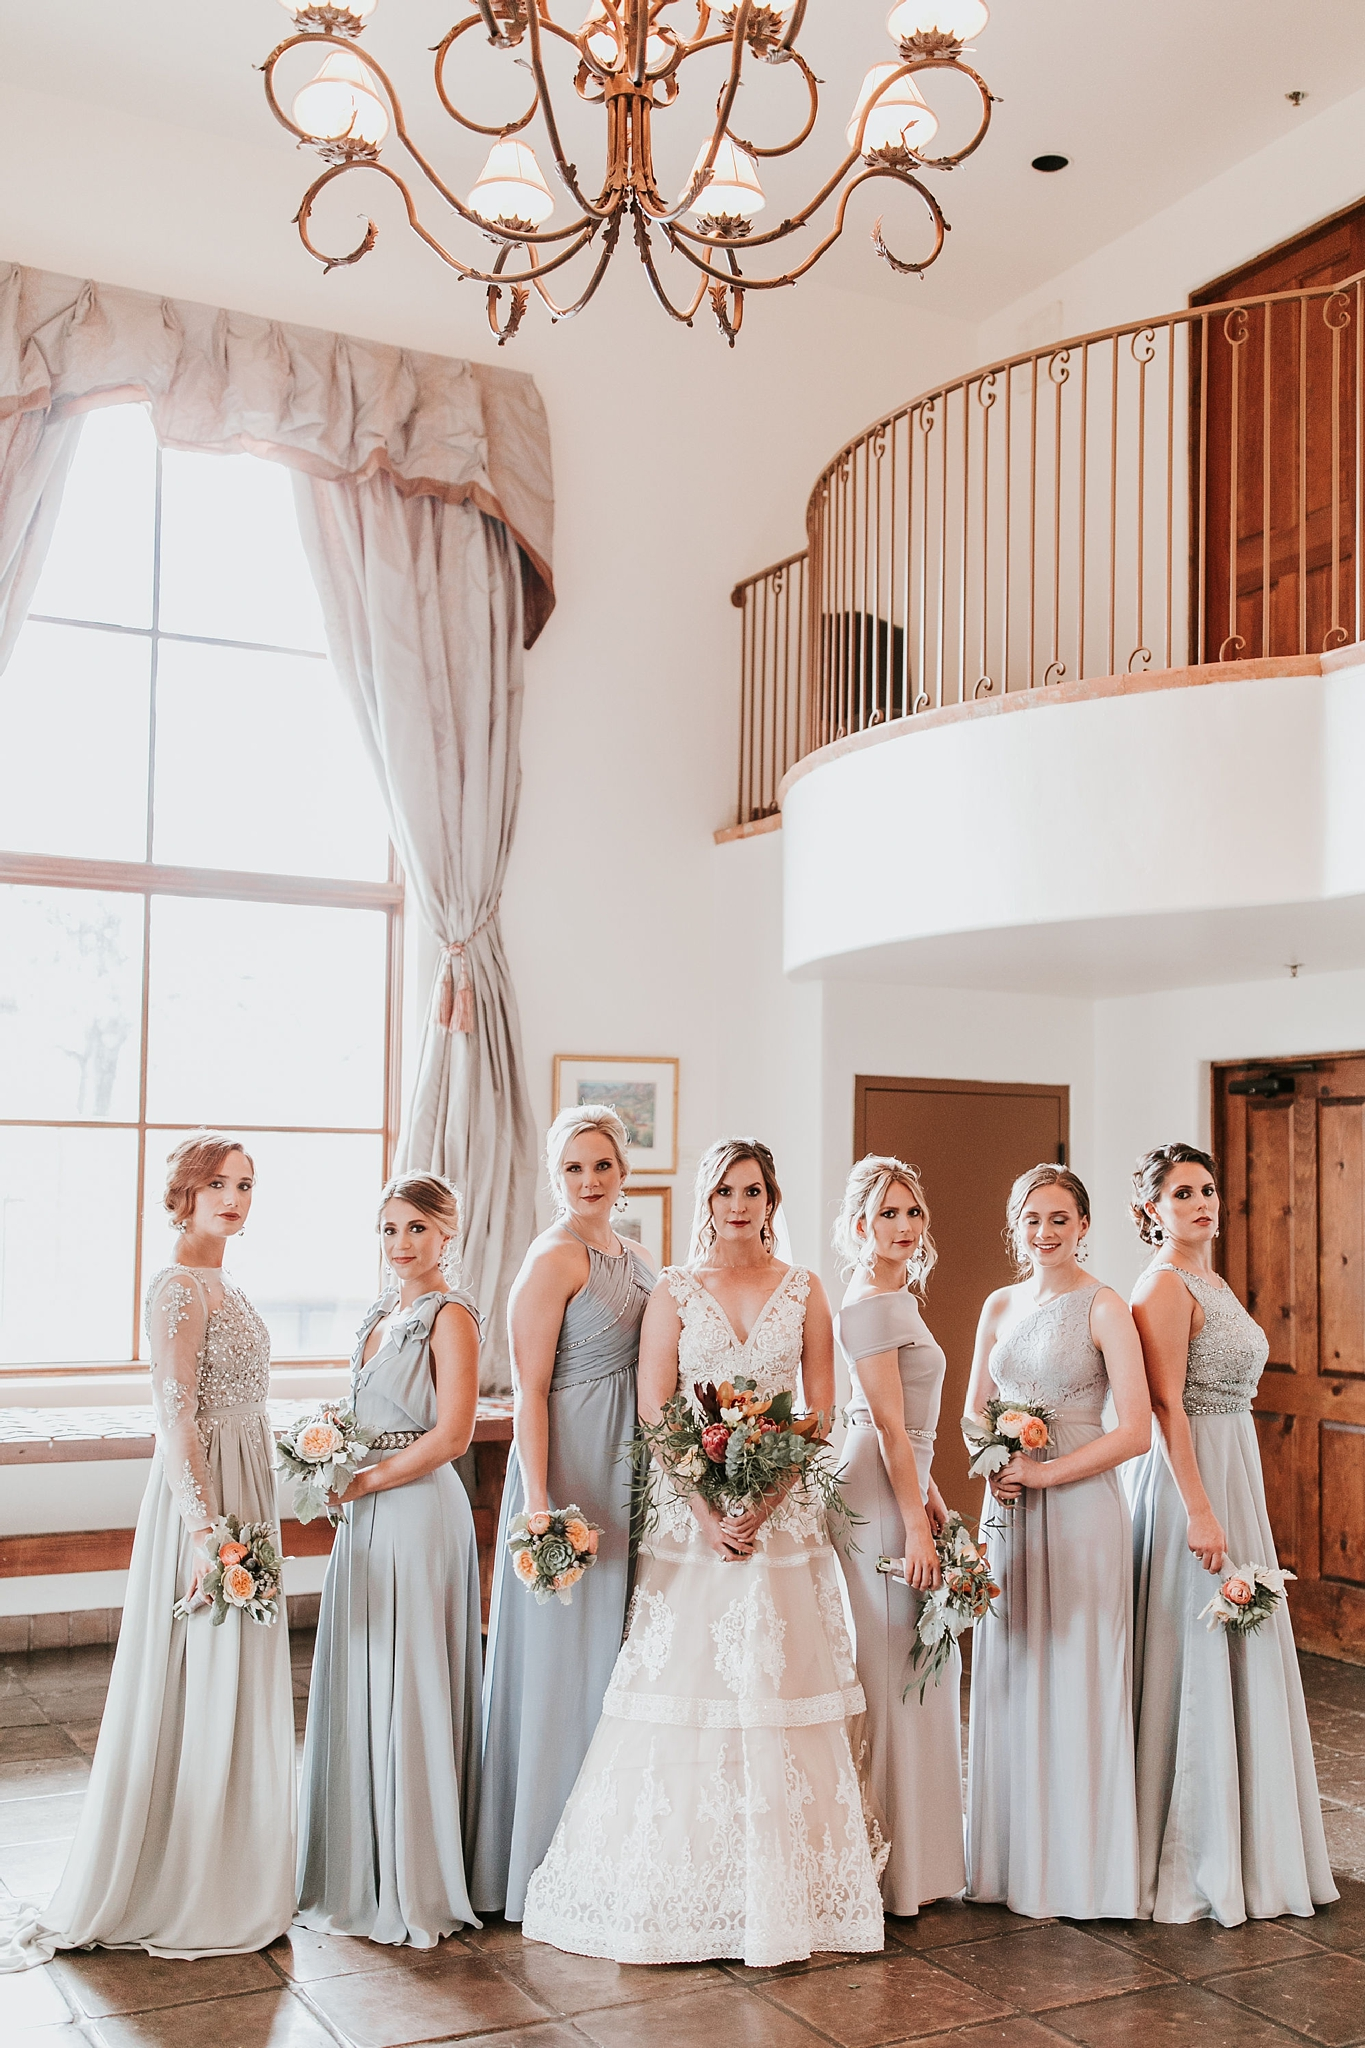 Alicia+lucia+photography+-+albuquerque+wedding+photographer+-+santa+fe+wedding+photography+-+new+mexico+wedding+photographer+-+new+mexico+wedding+-+new+mexico+wedding+-+colorado+wedding+-+bridesmaids+-+bridesmaid+style_0019.jpg